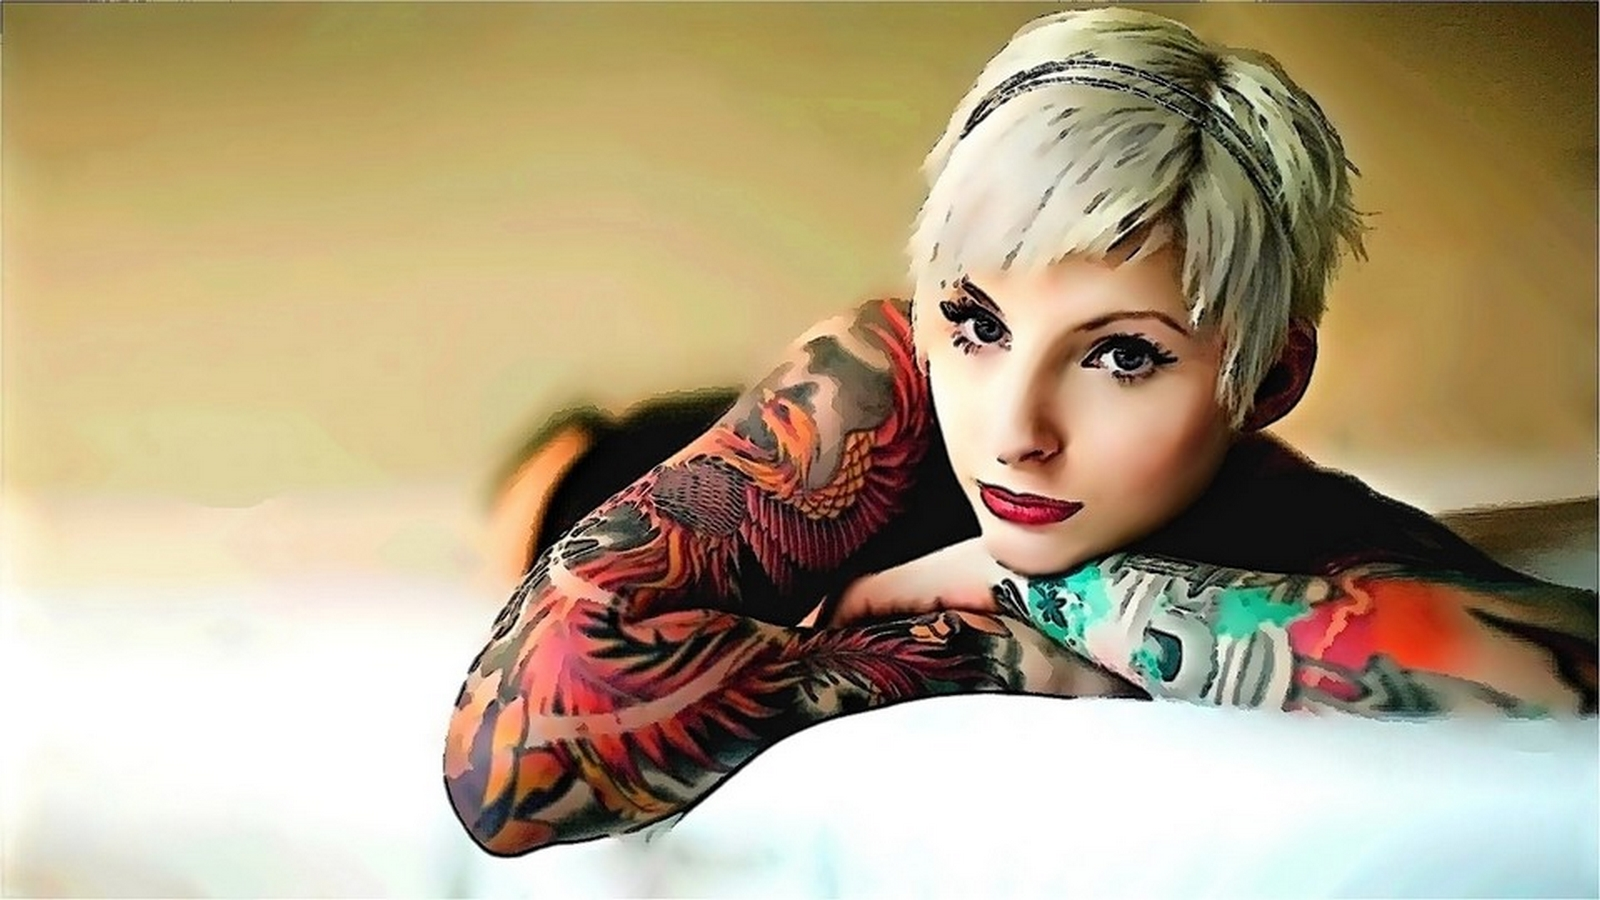 Tattoo Model Wallpaper